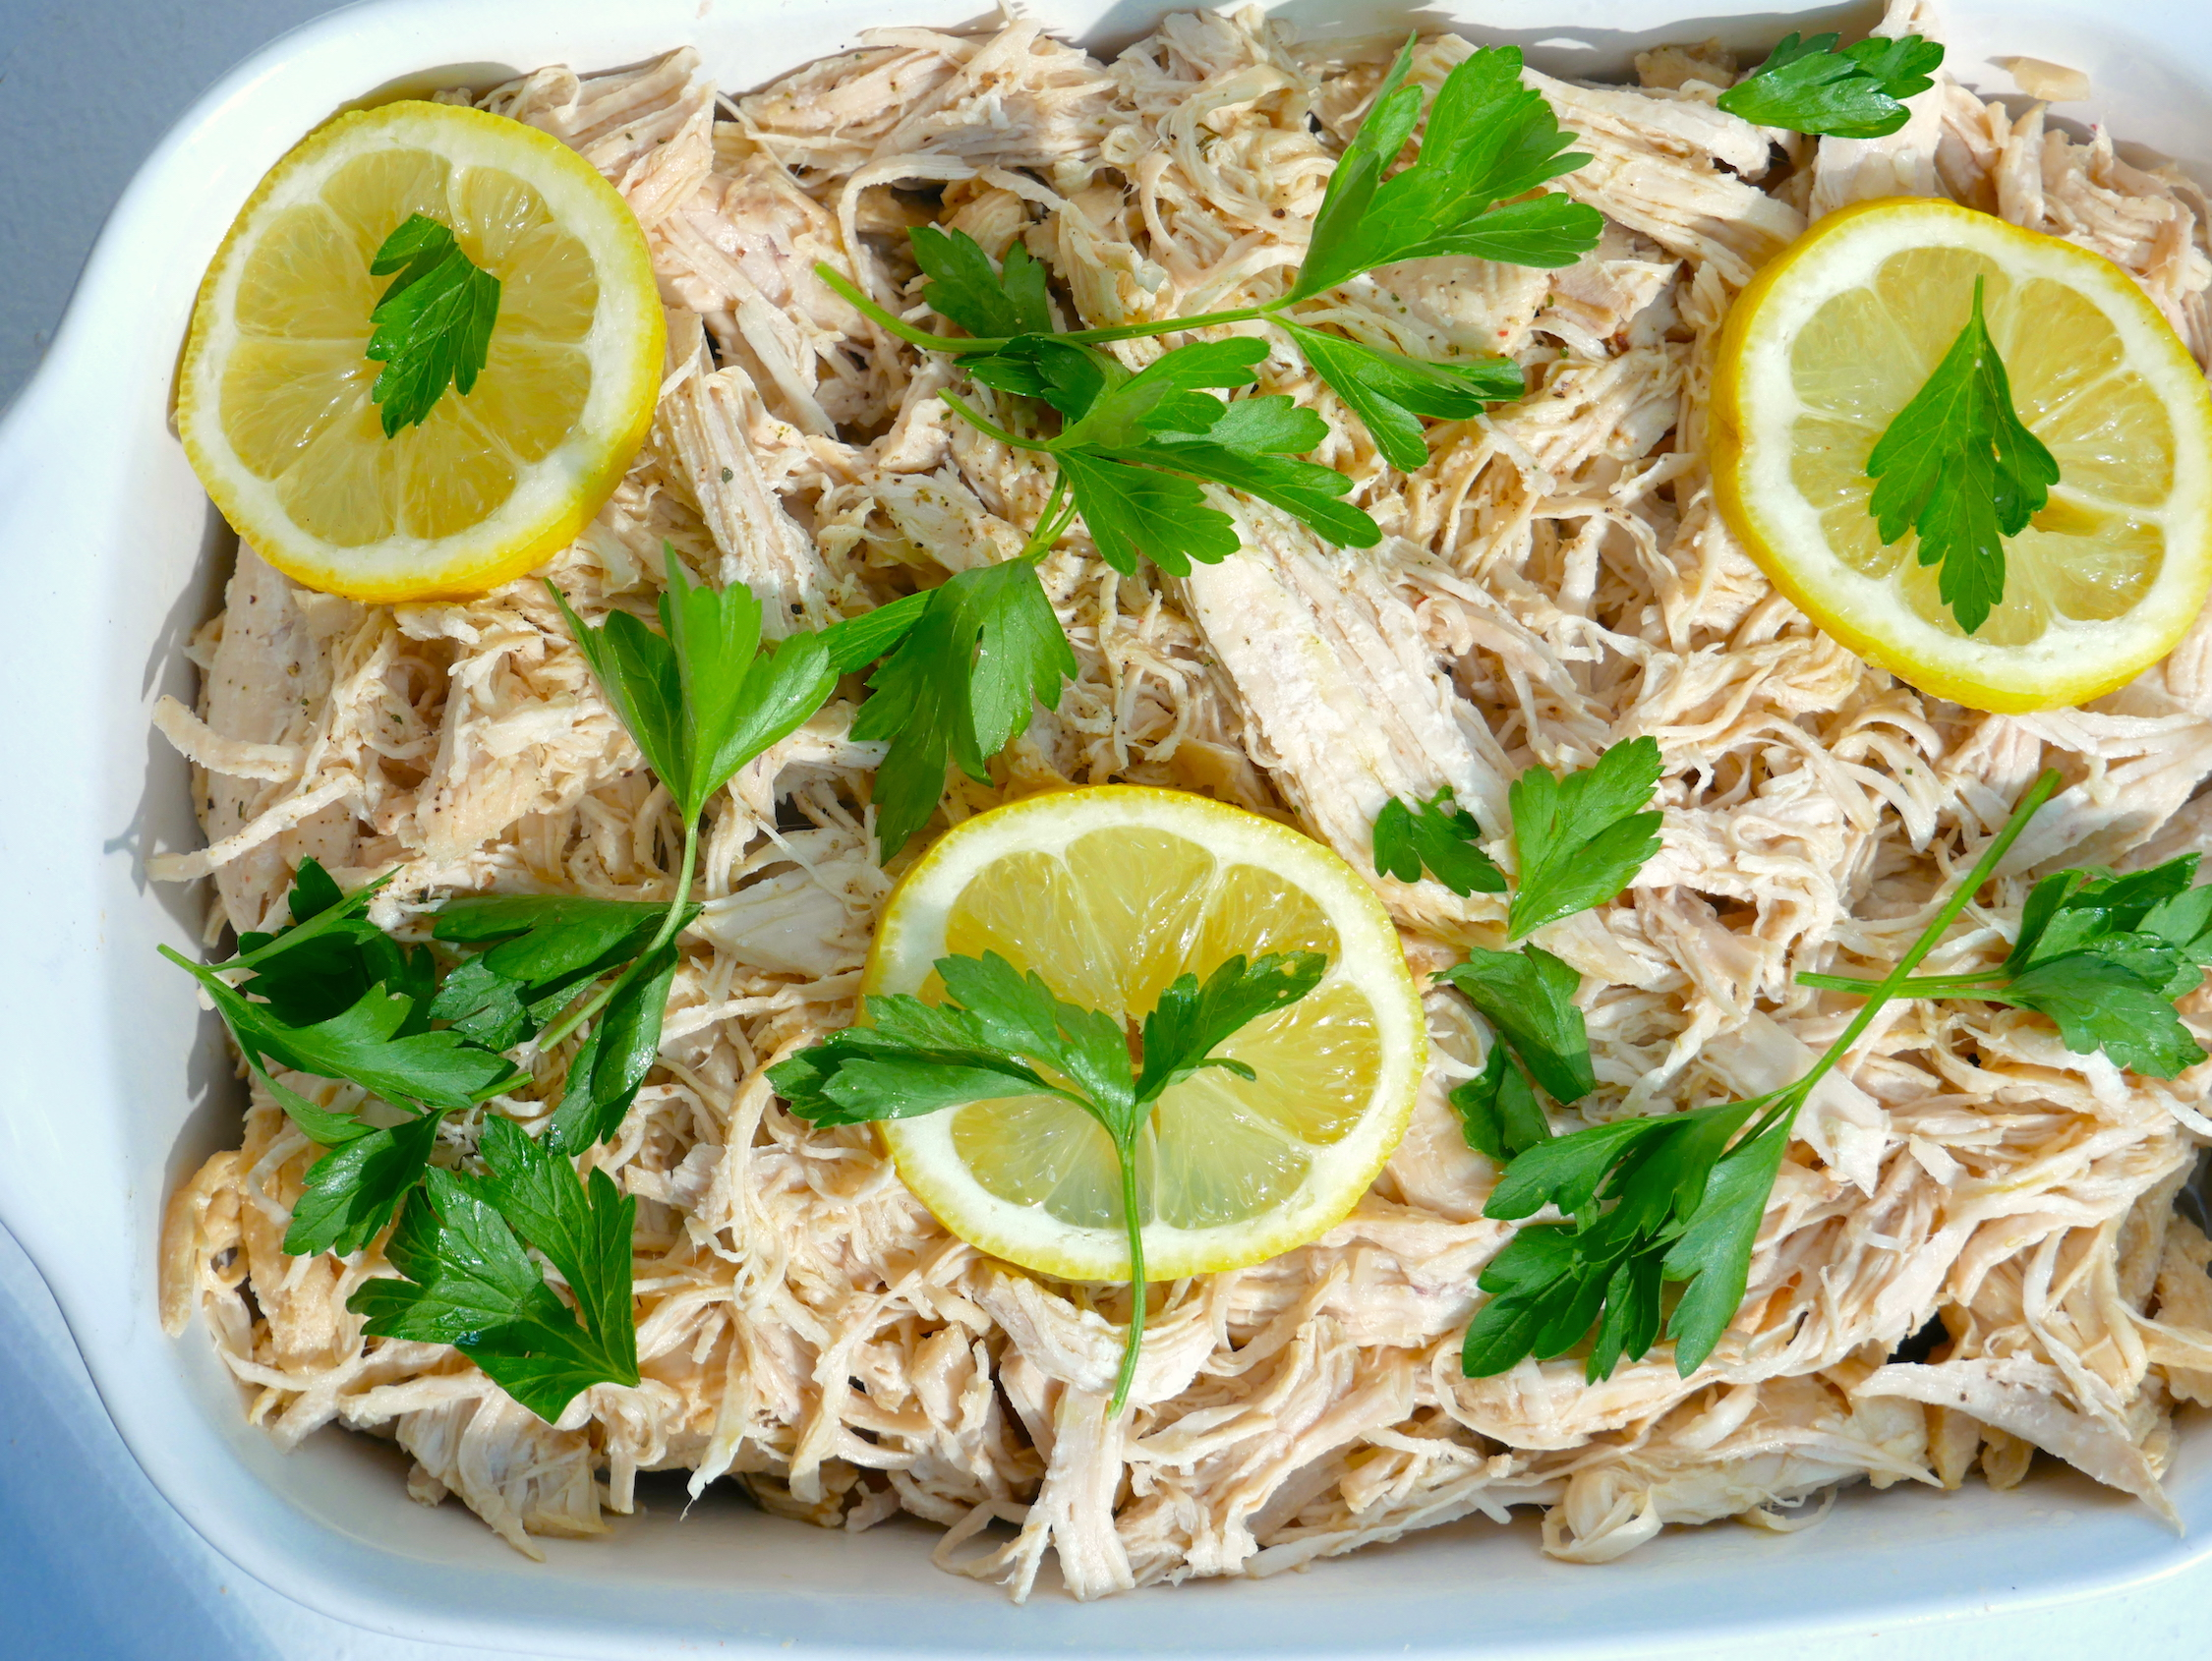 lemon garlic shredded chicken